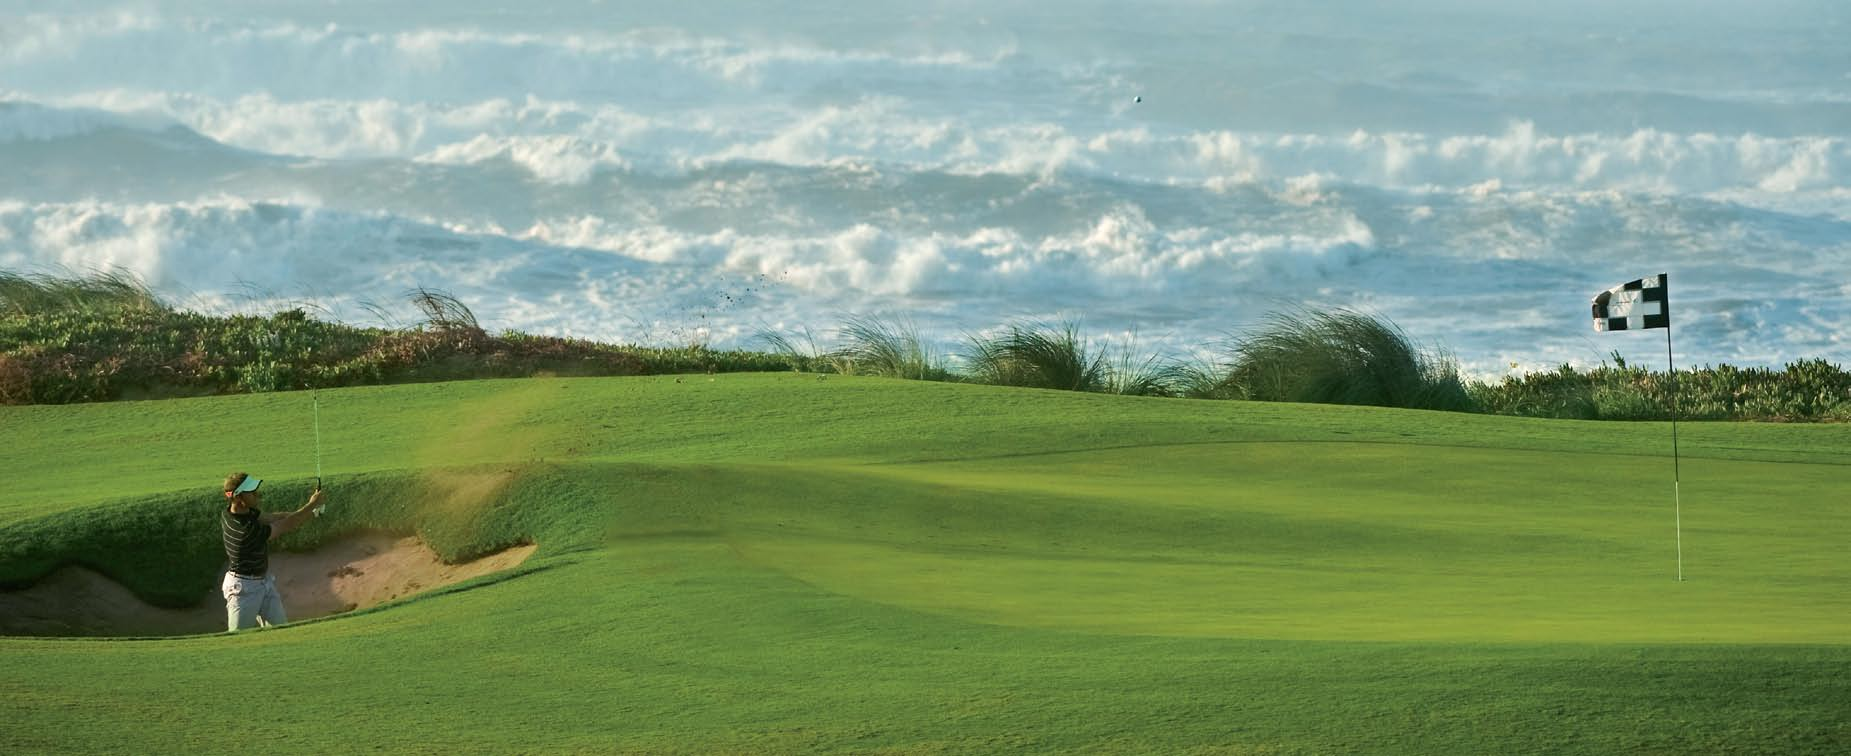 Golf Academy: discovery and performance For beginners and for advanced players, the Mazagan Golf Club Academy adapts its